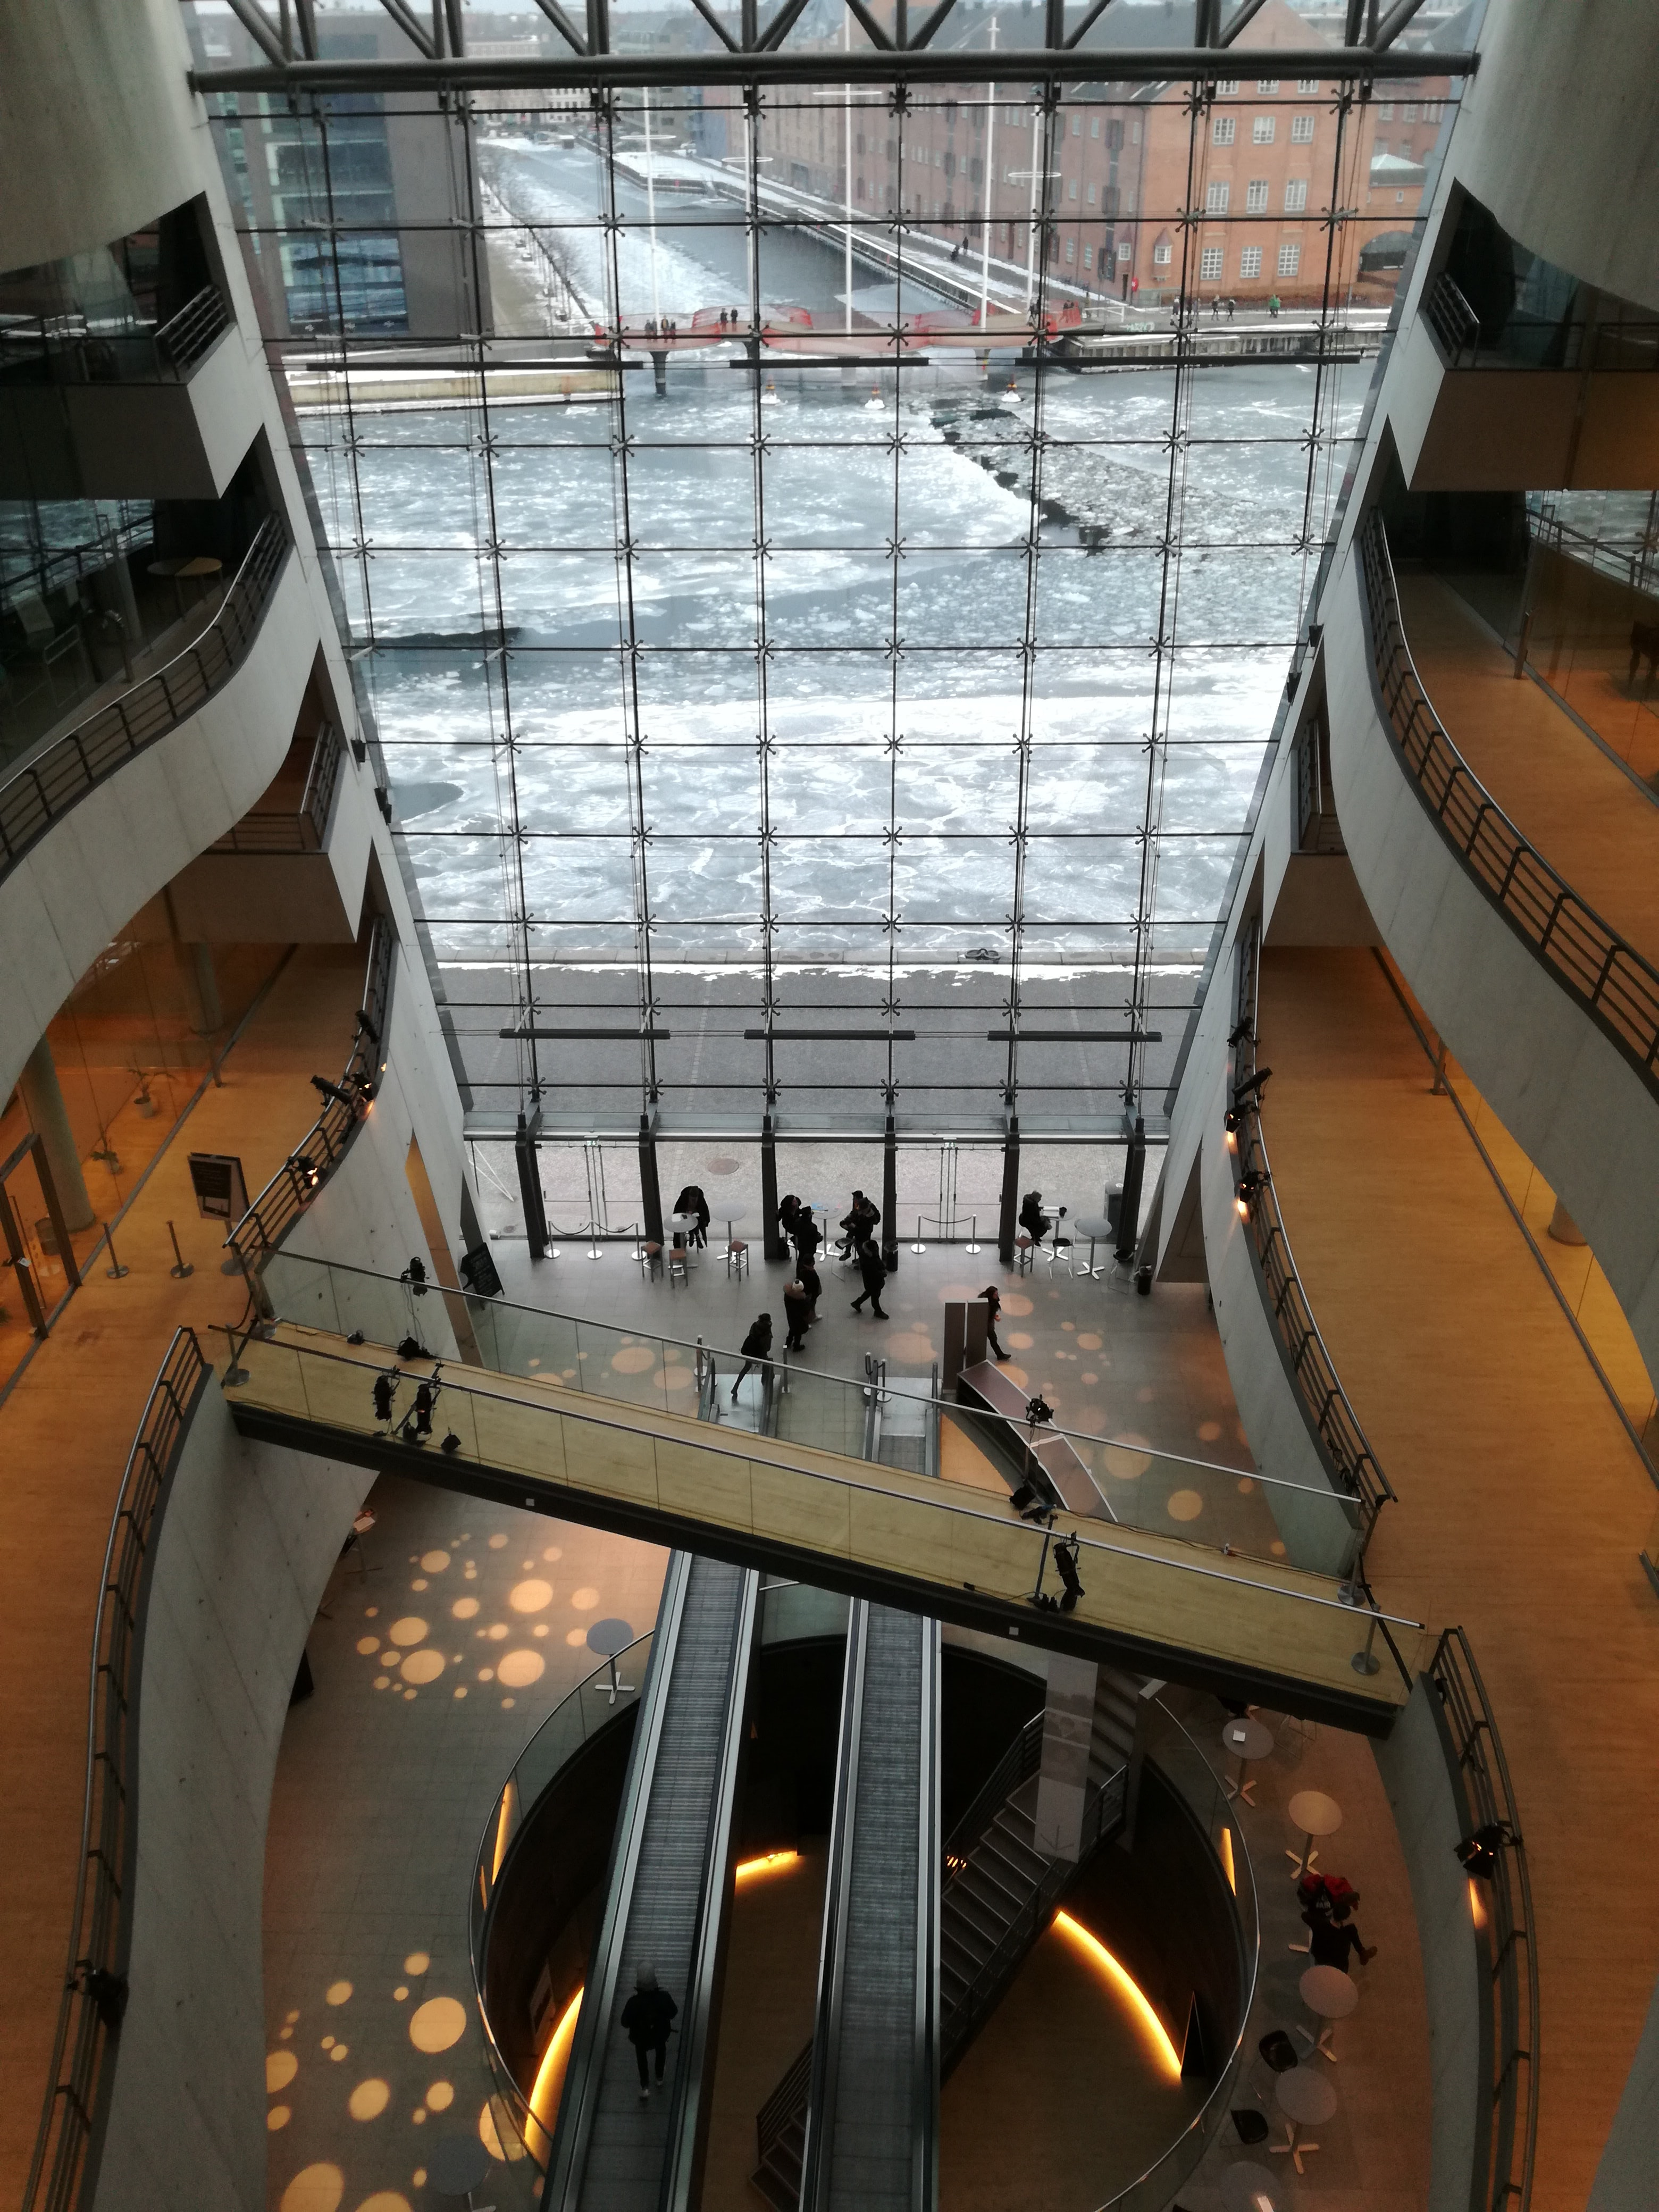 high-angle photo of people inside glass building